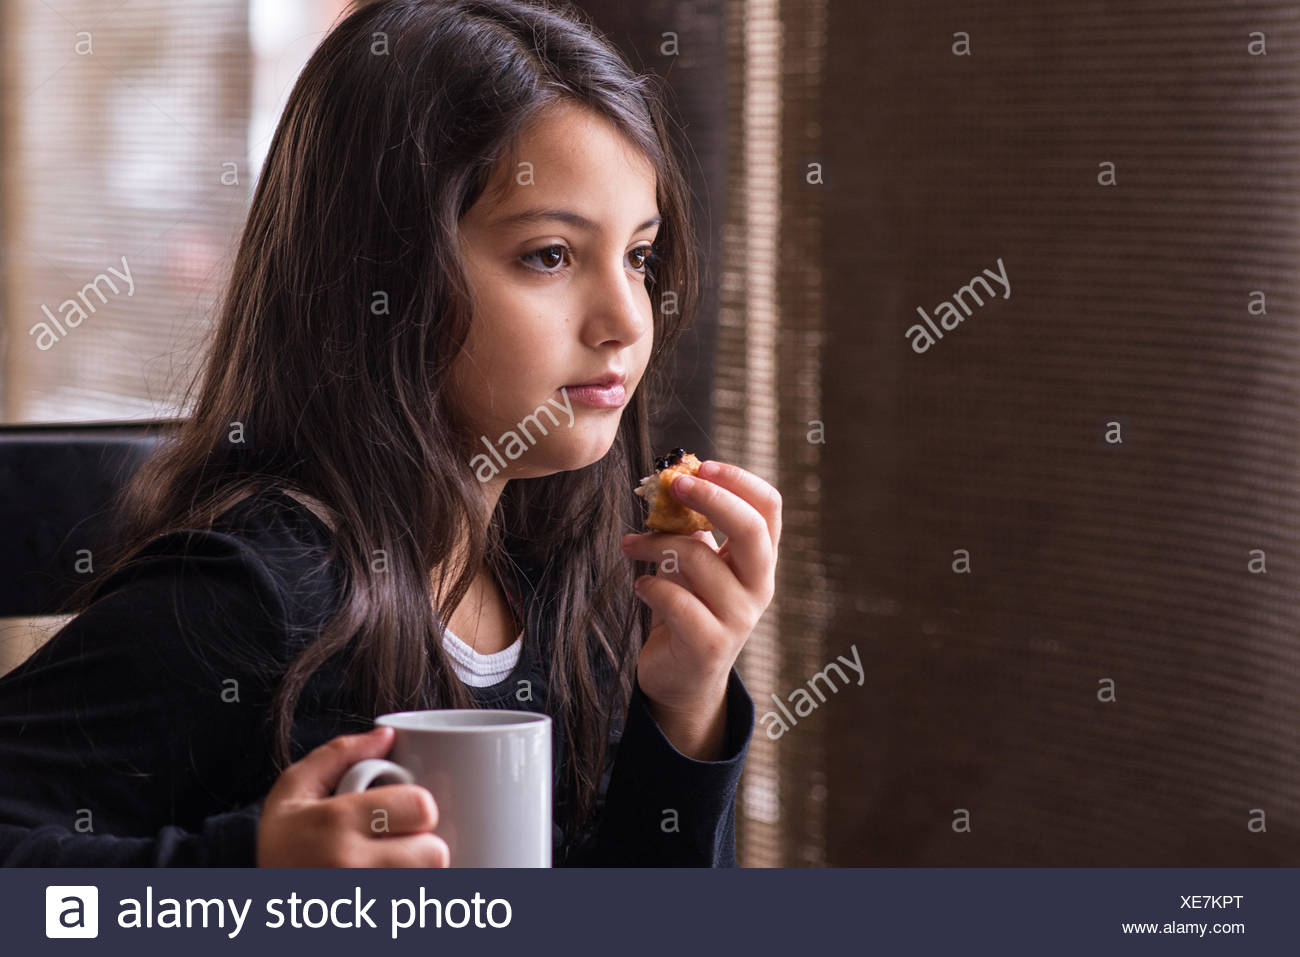 Girl sitting in cafe with a cup of hot chocolate and cake - Stock Image